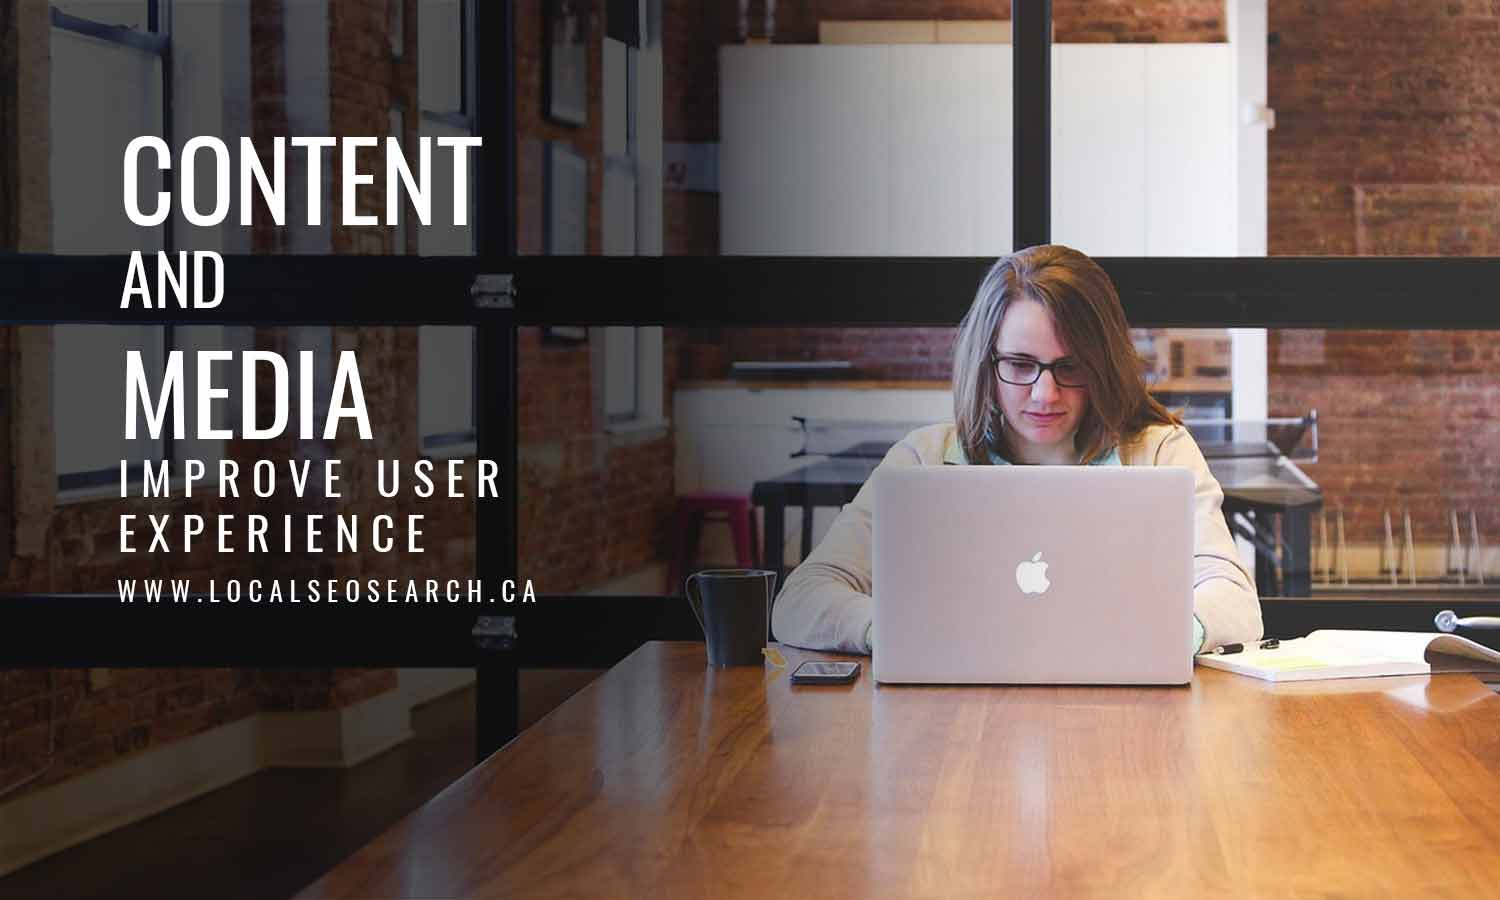 Content-and-media-improve-user-experience